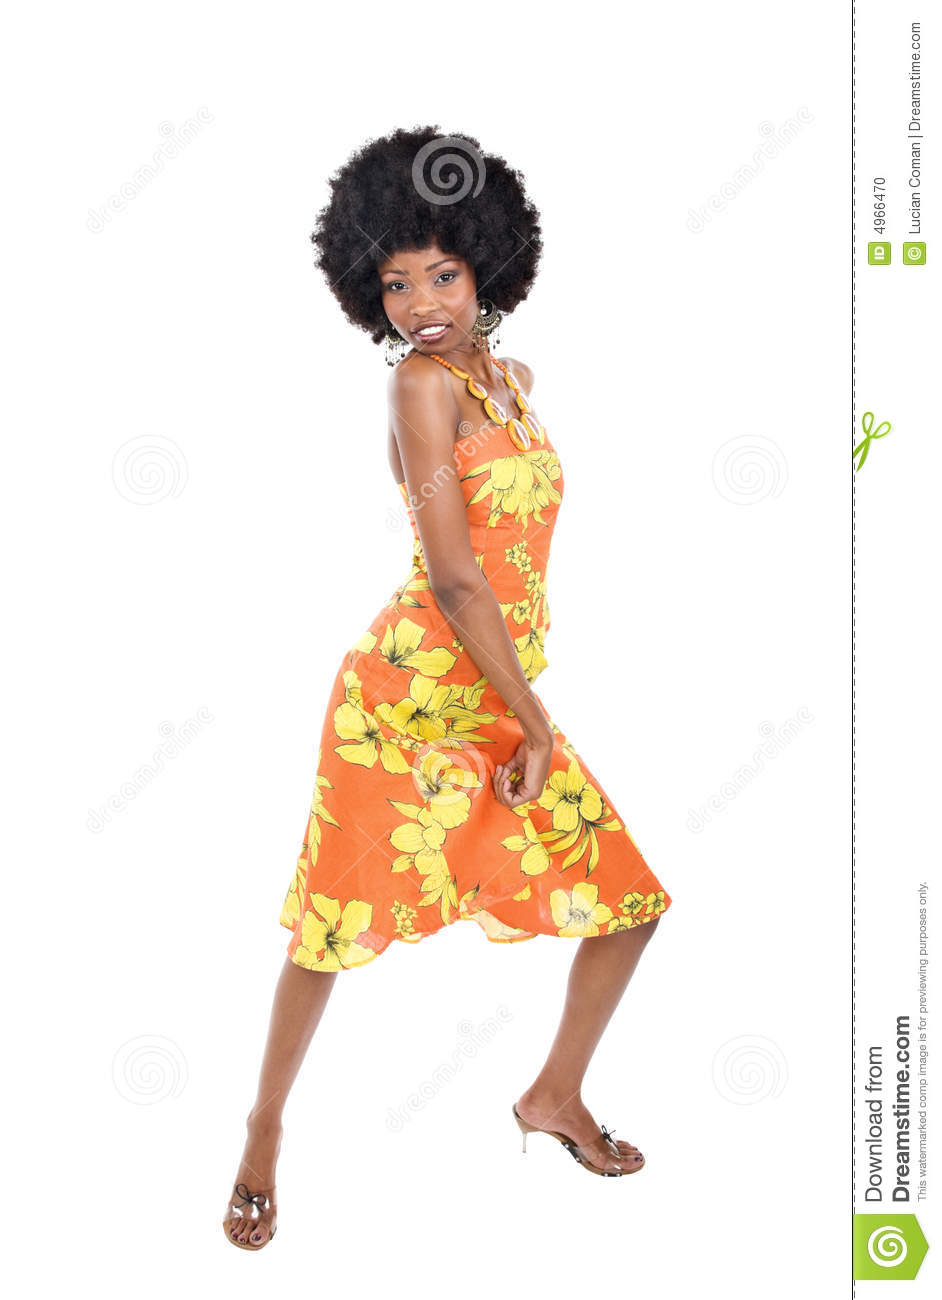 3d Animation Animals Wallpaper African Woman Dancing Stock Photo Image 4966470